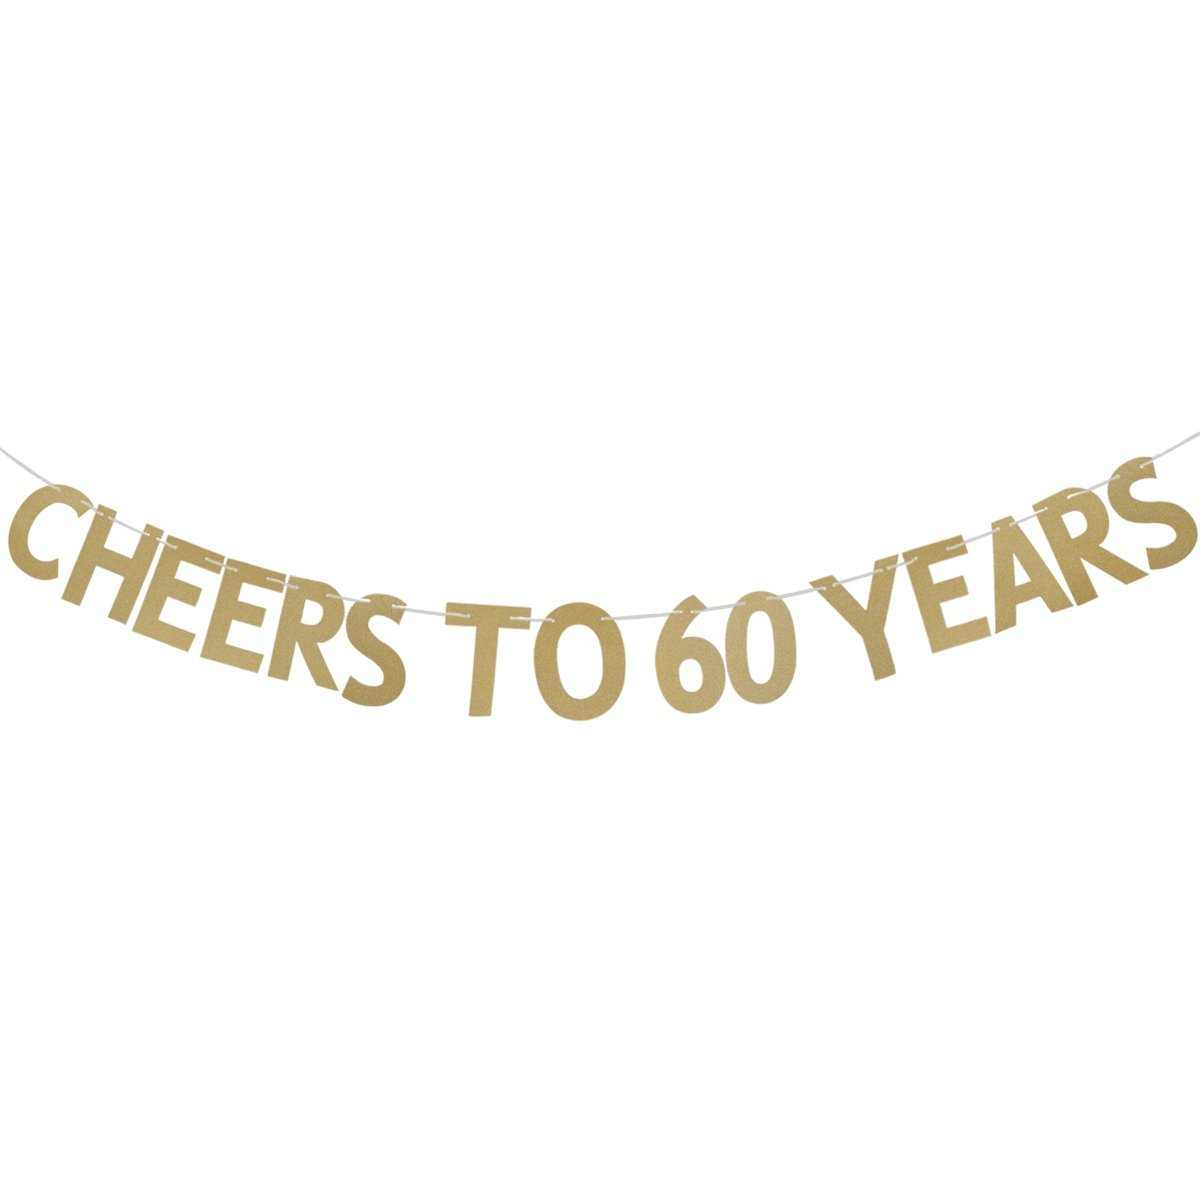 Get quotations · ultnice letters banner with cheers to 60 years golden glitter garland bunting hanging decoration 3m